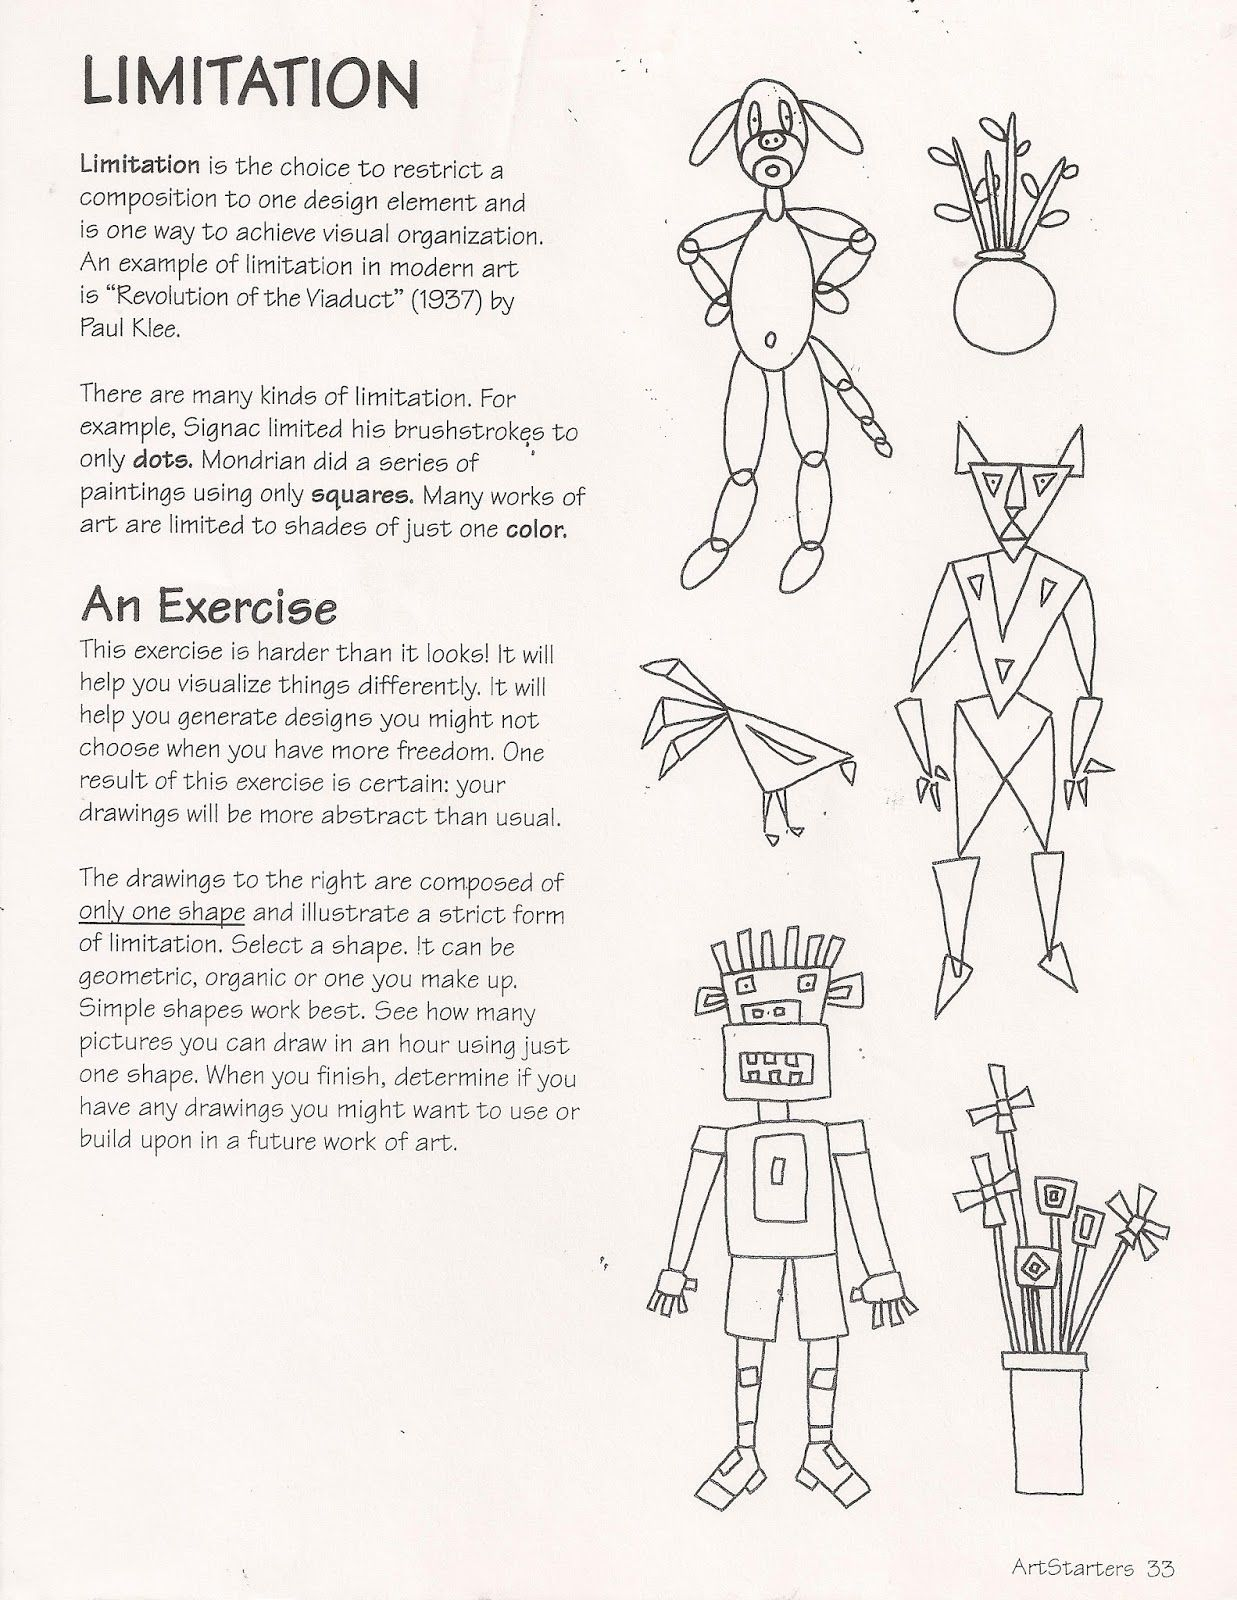 Worksheet Foryzing Art